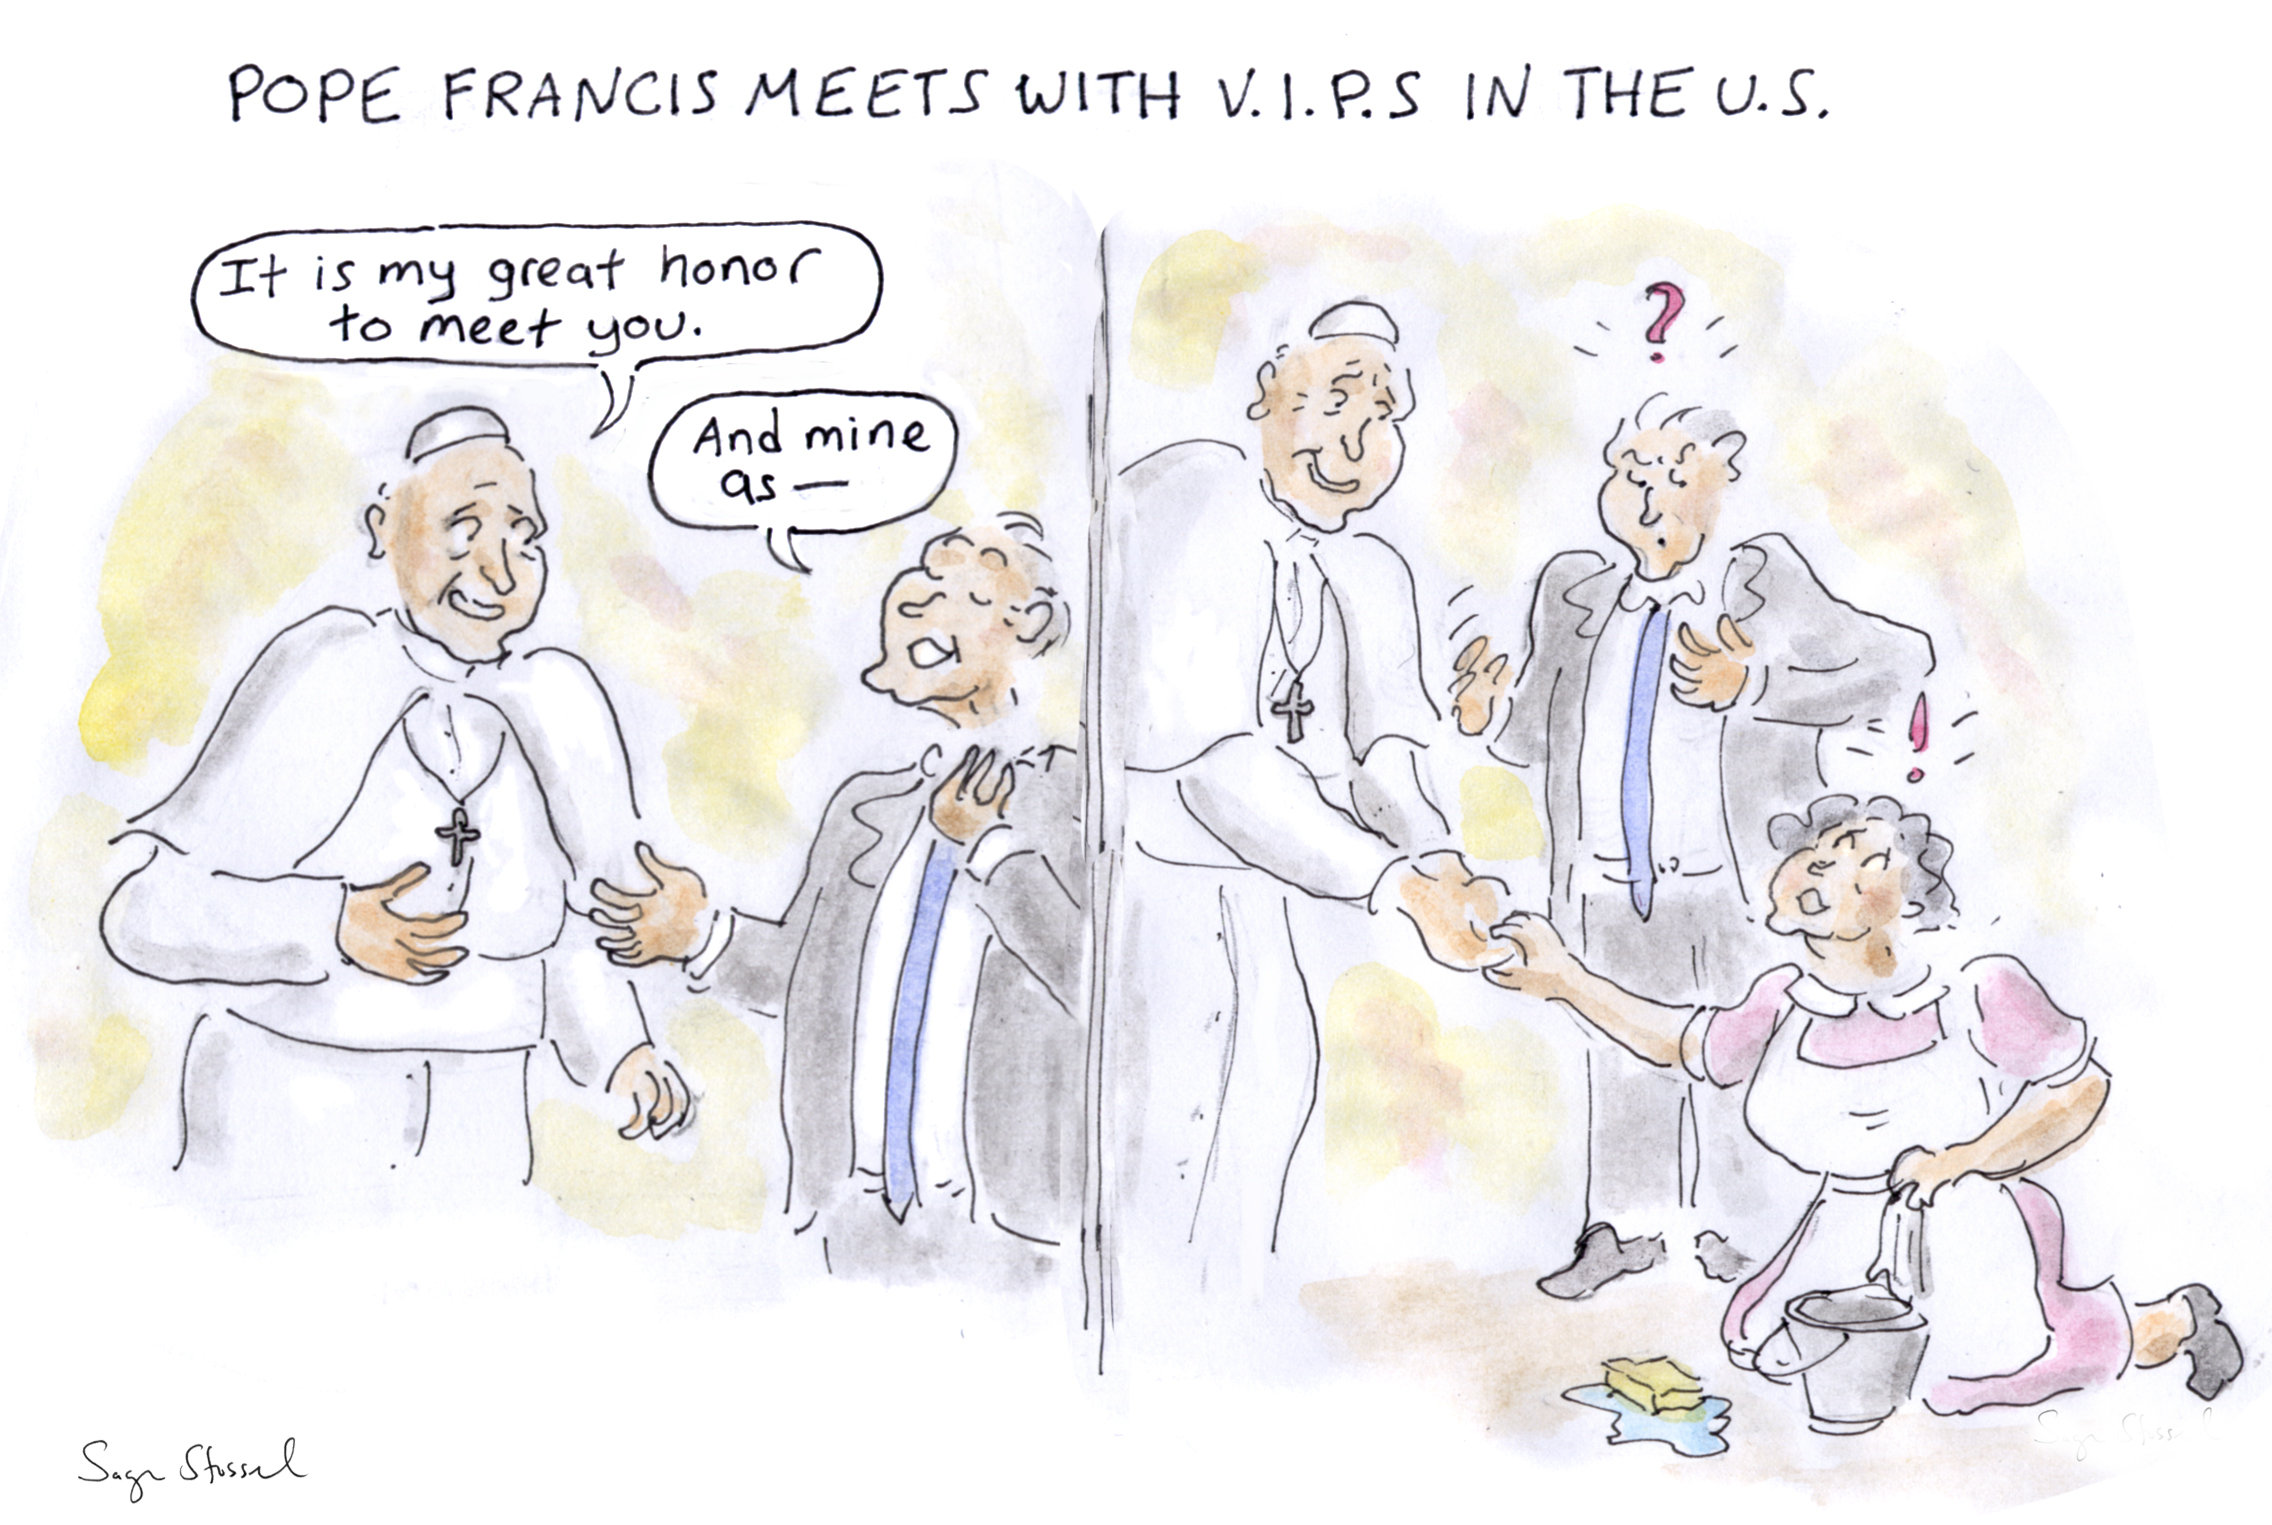 pope francis, u.s. visit, cuba, address congress, homeless, catholic church, white house, poor, jesuits, cartoon